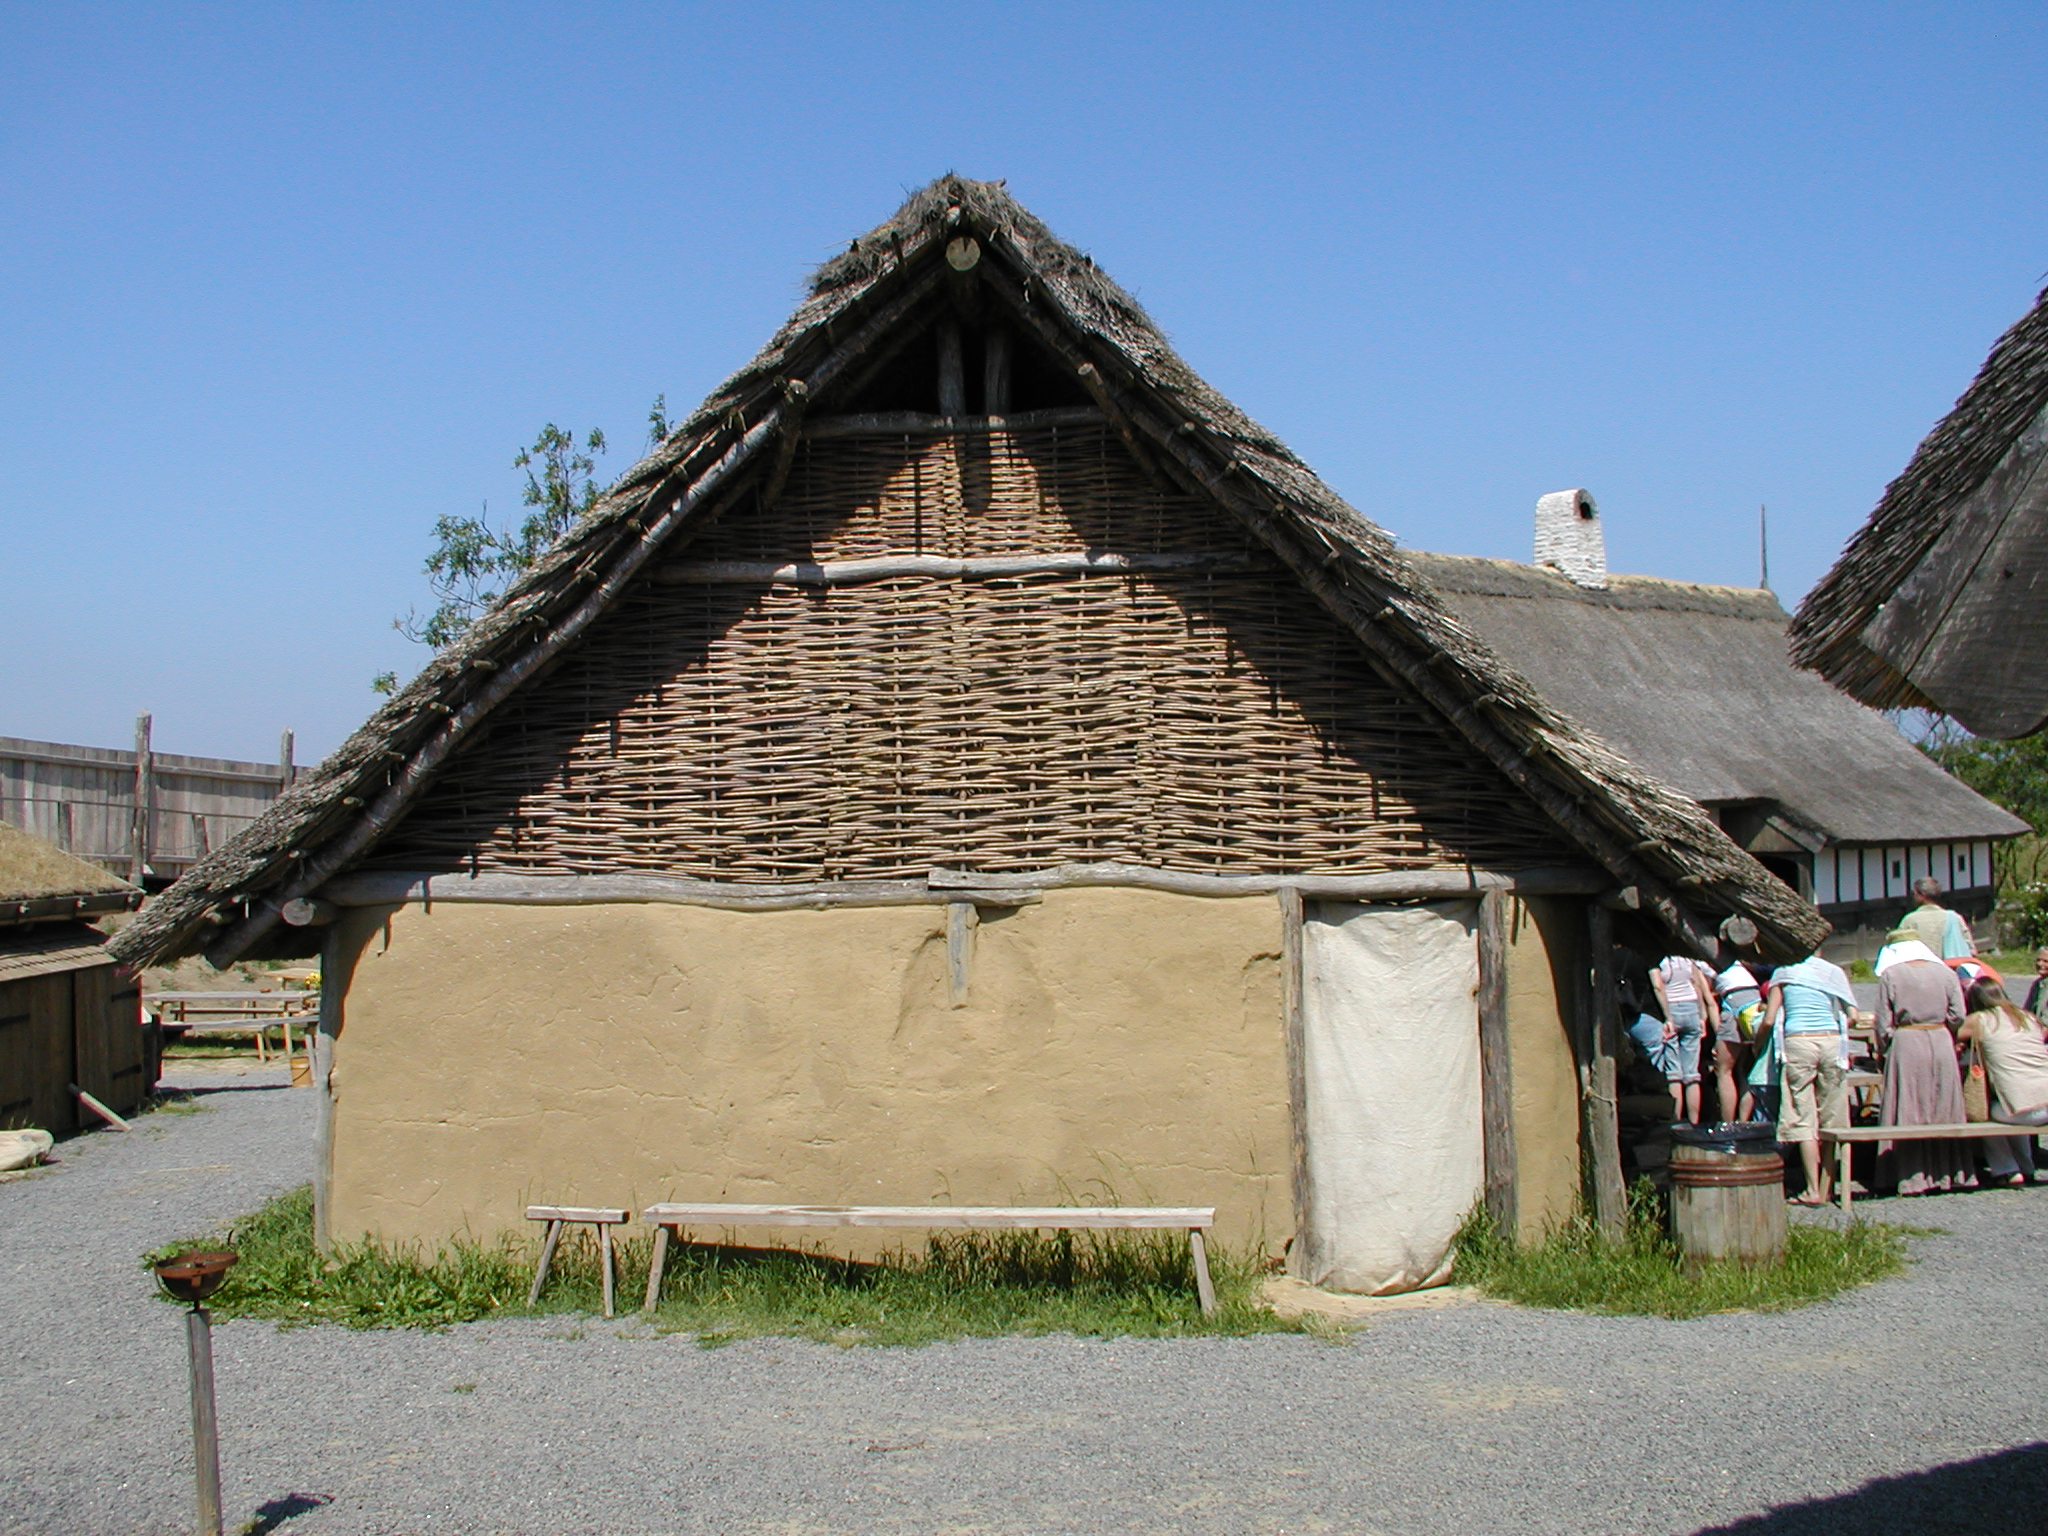 tabus natural house clay reet thatched roof